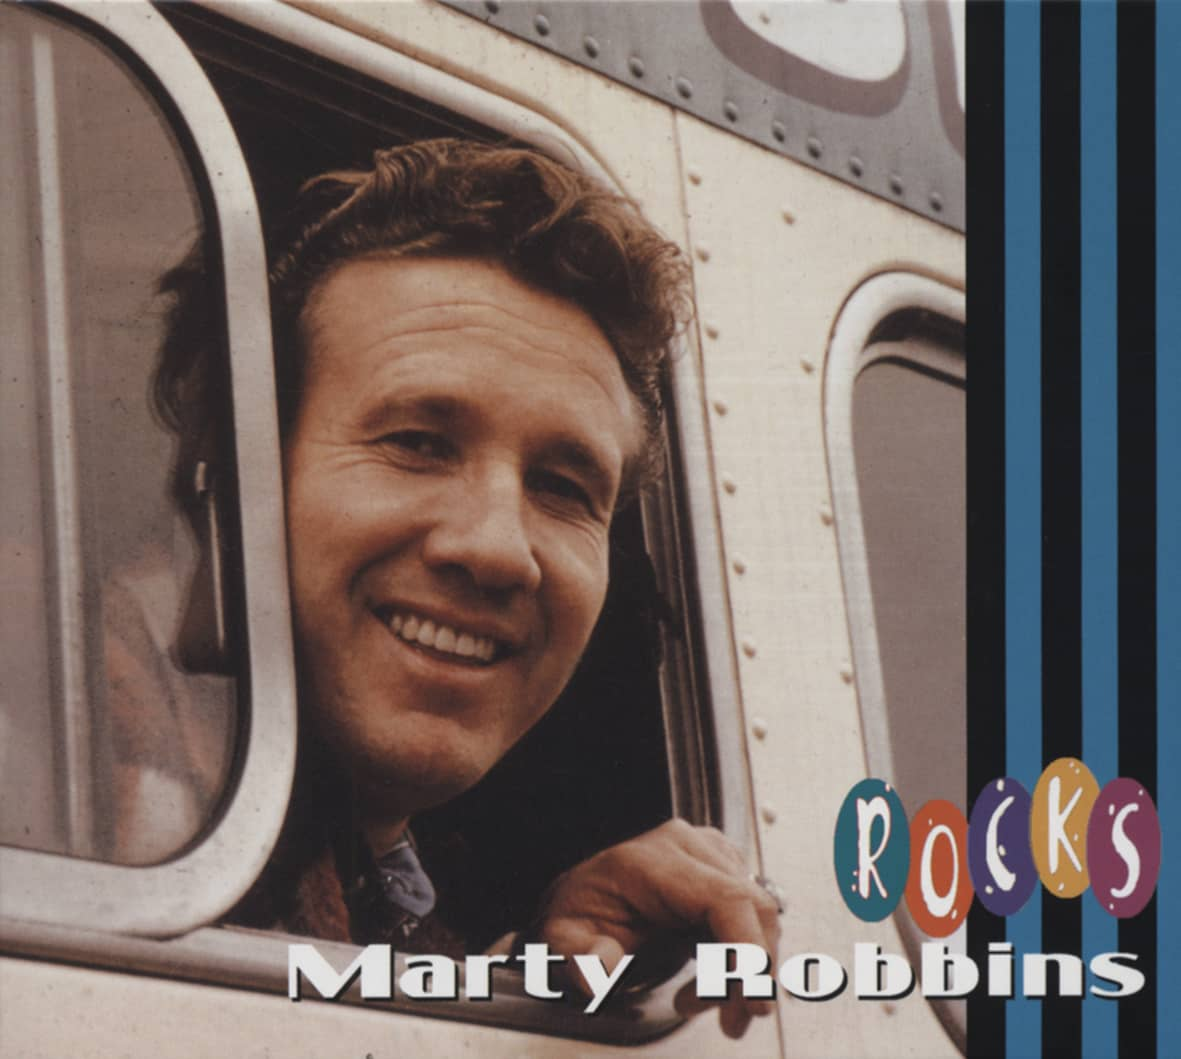 twentieth century drifter the life of marty robbins